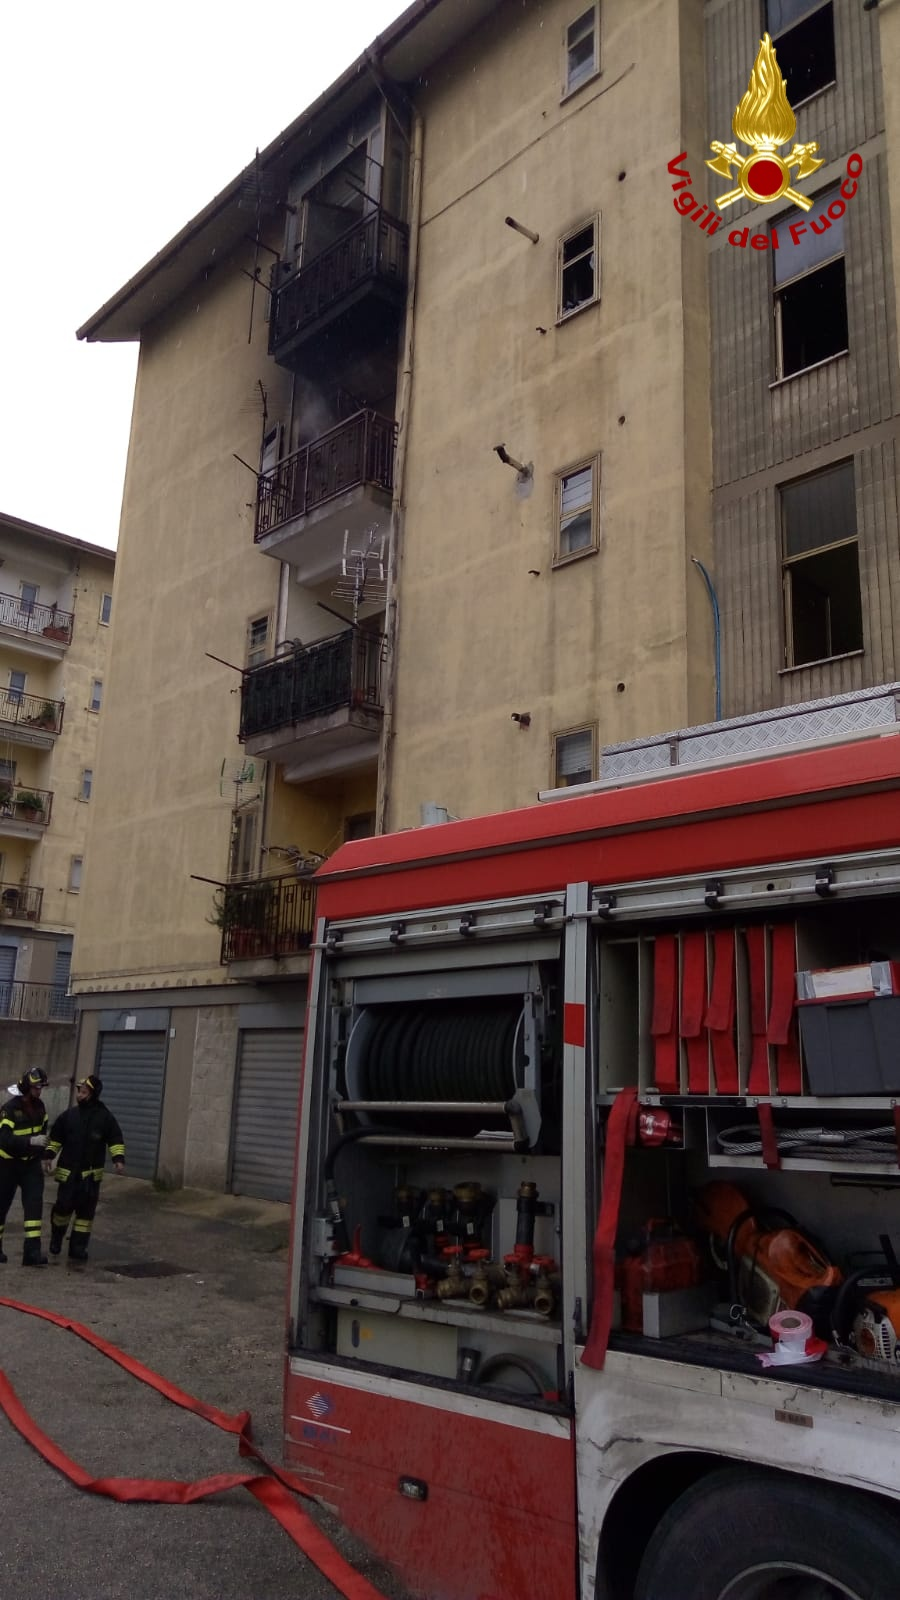 Palazzina in fiamme